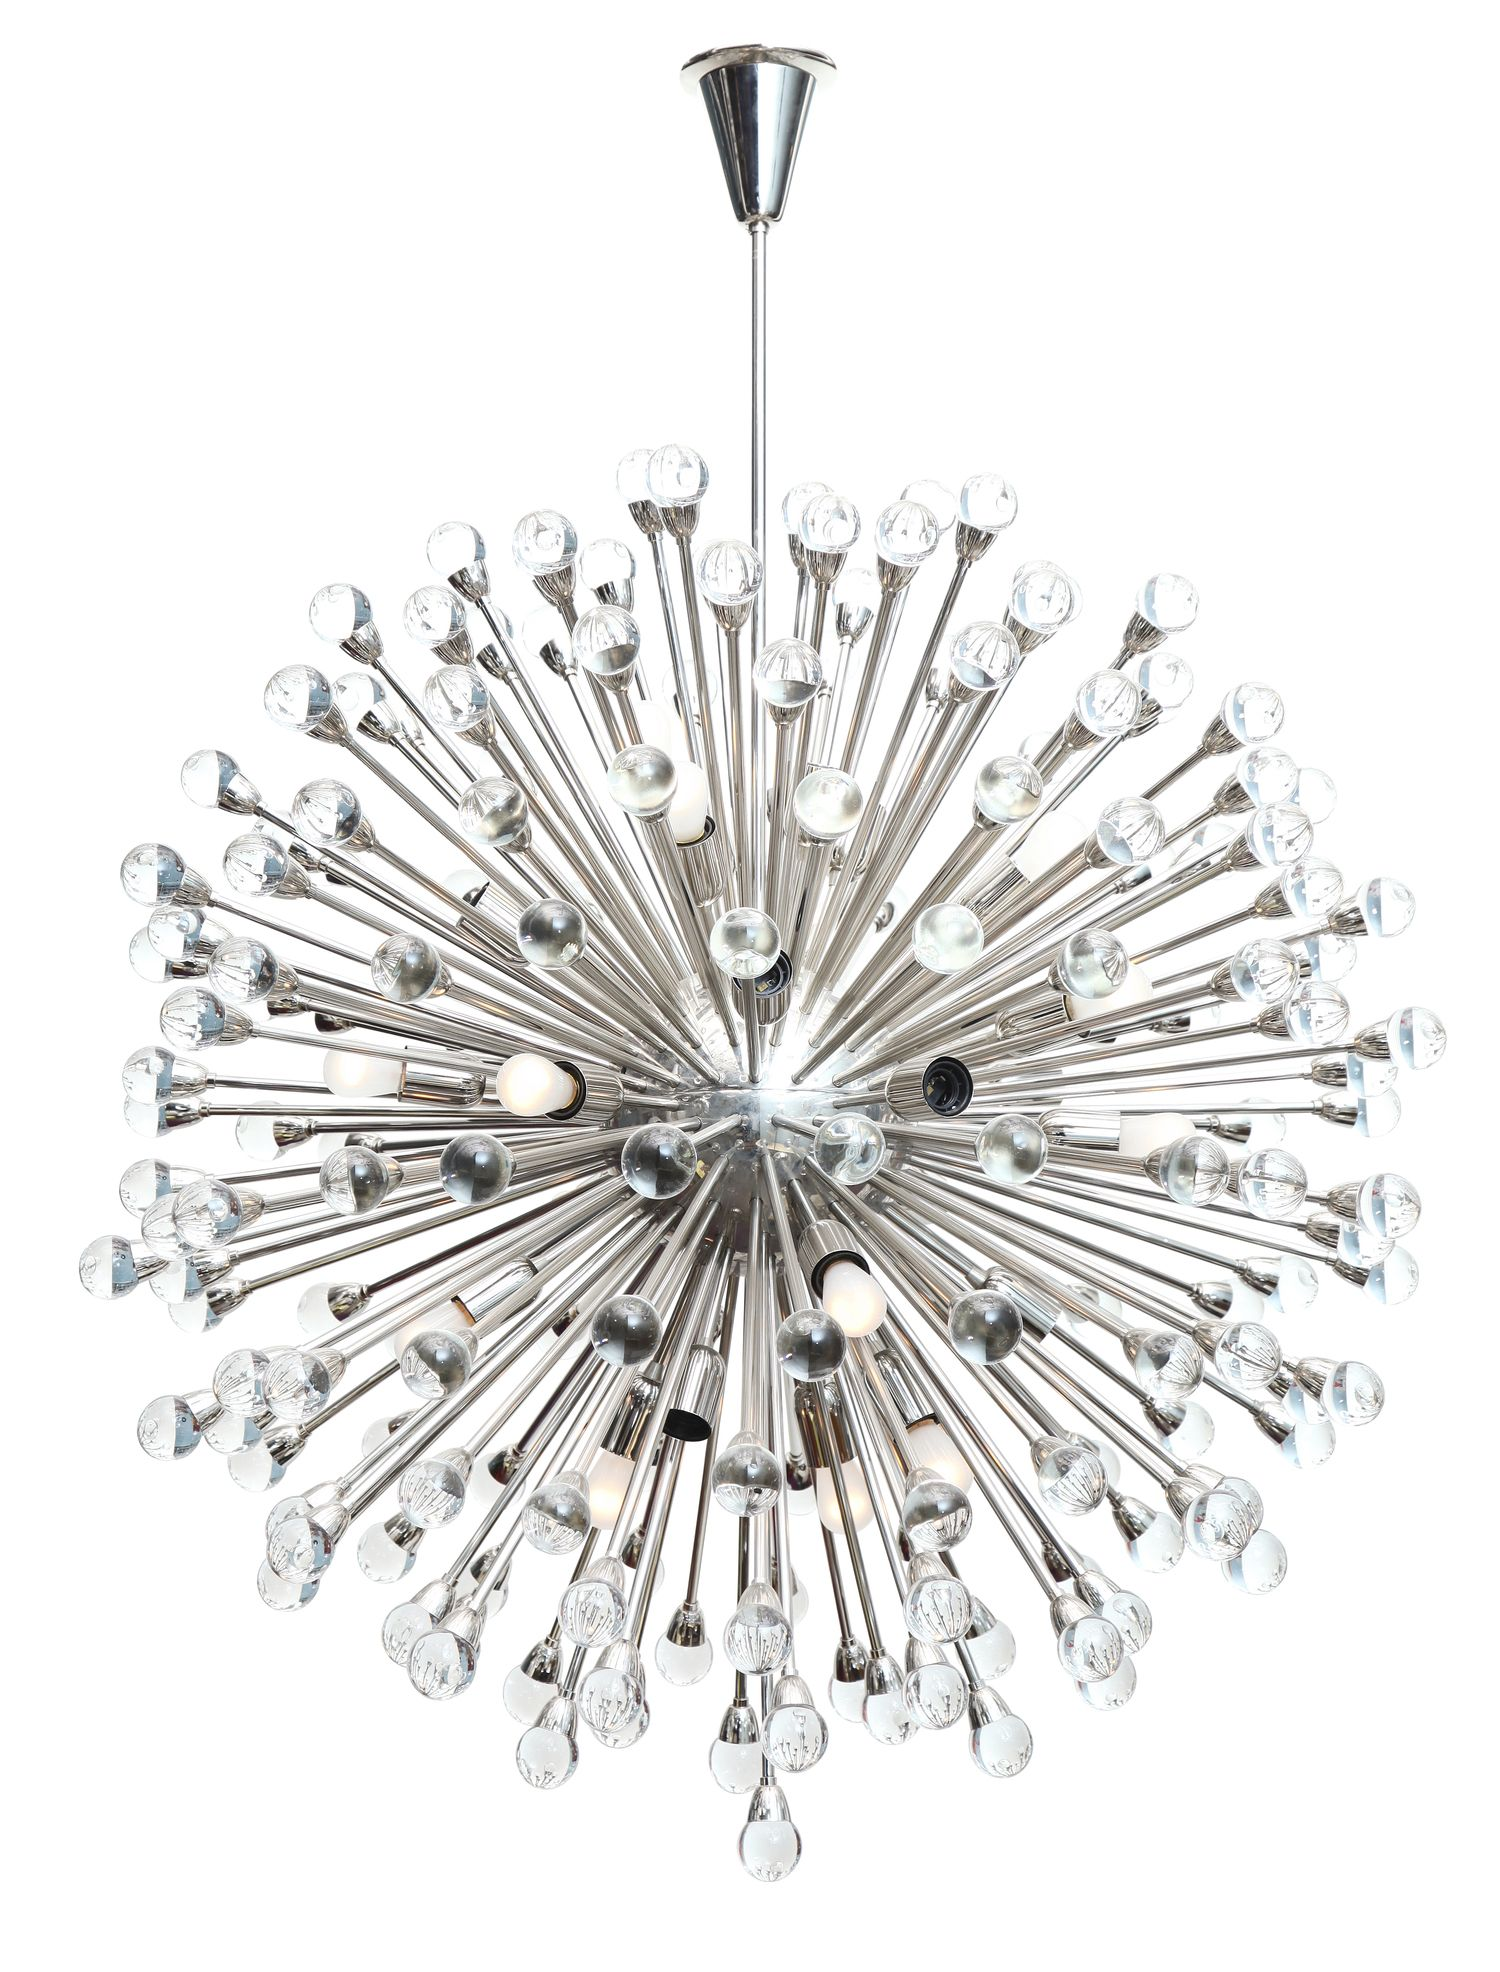 Large Scale Nickel Dandelion Chandelier Chandelier Antiques